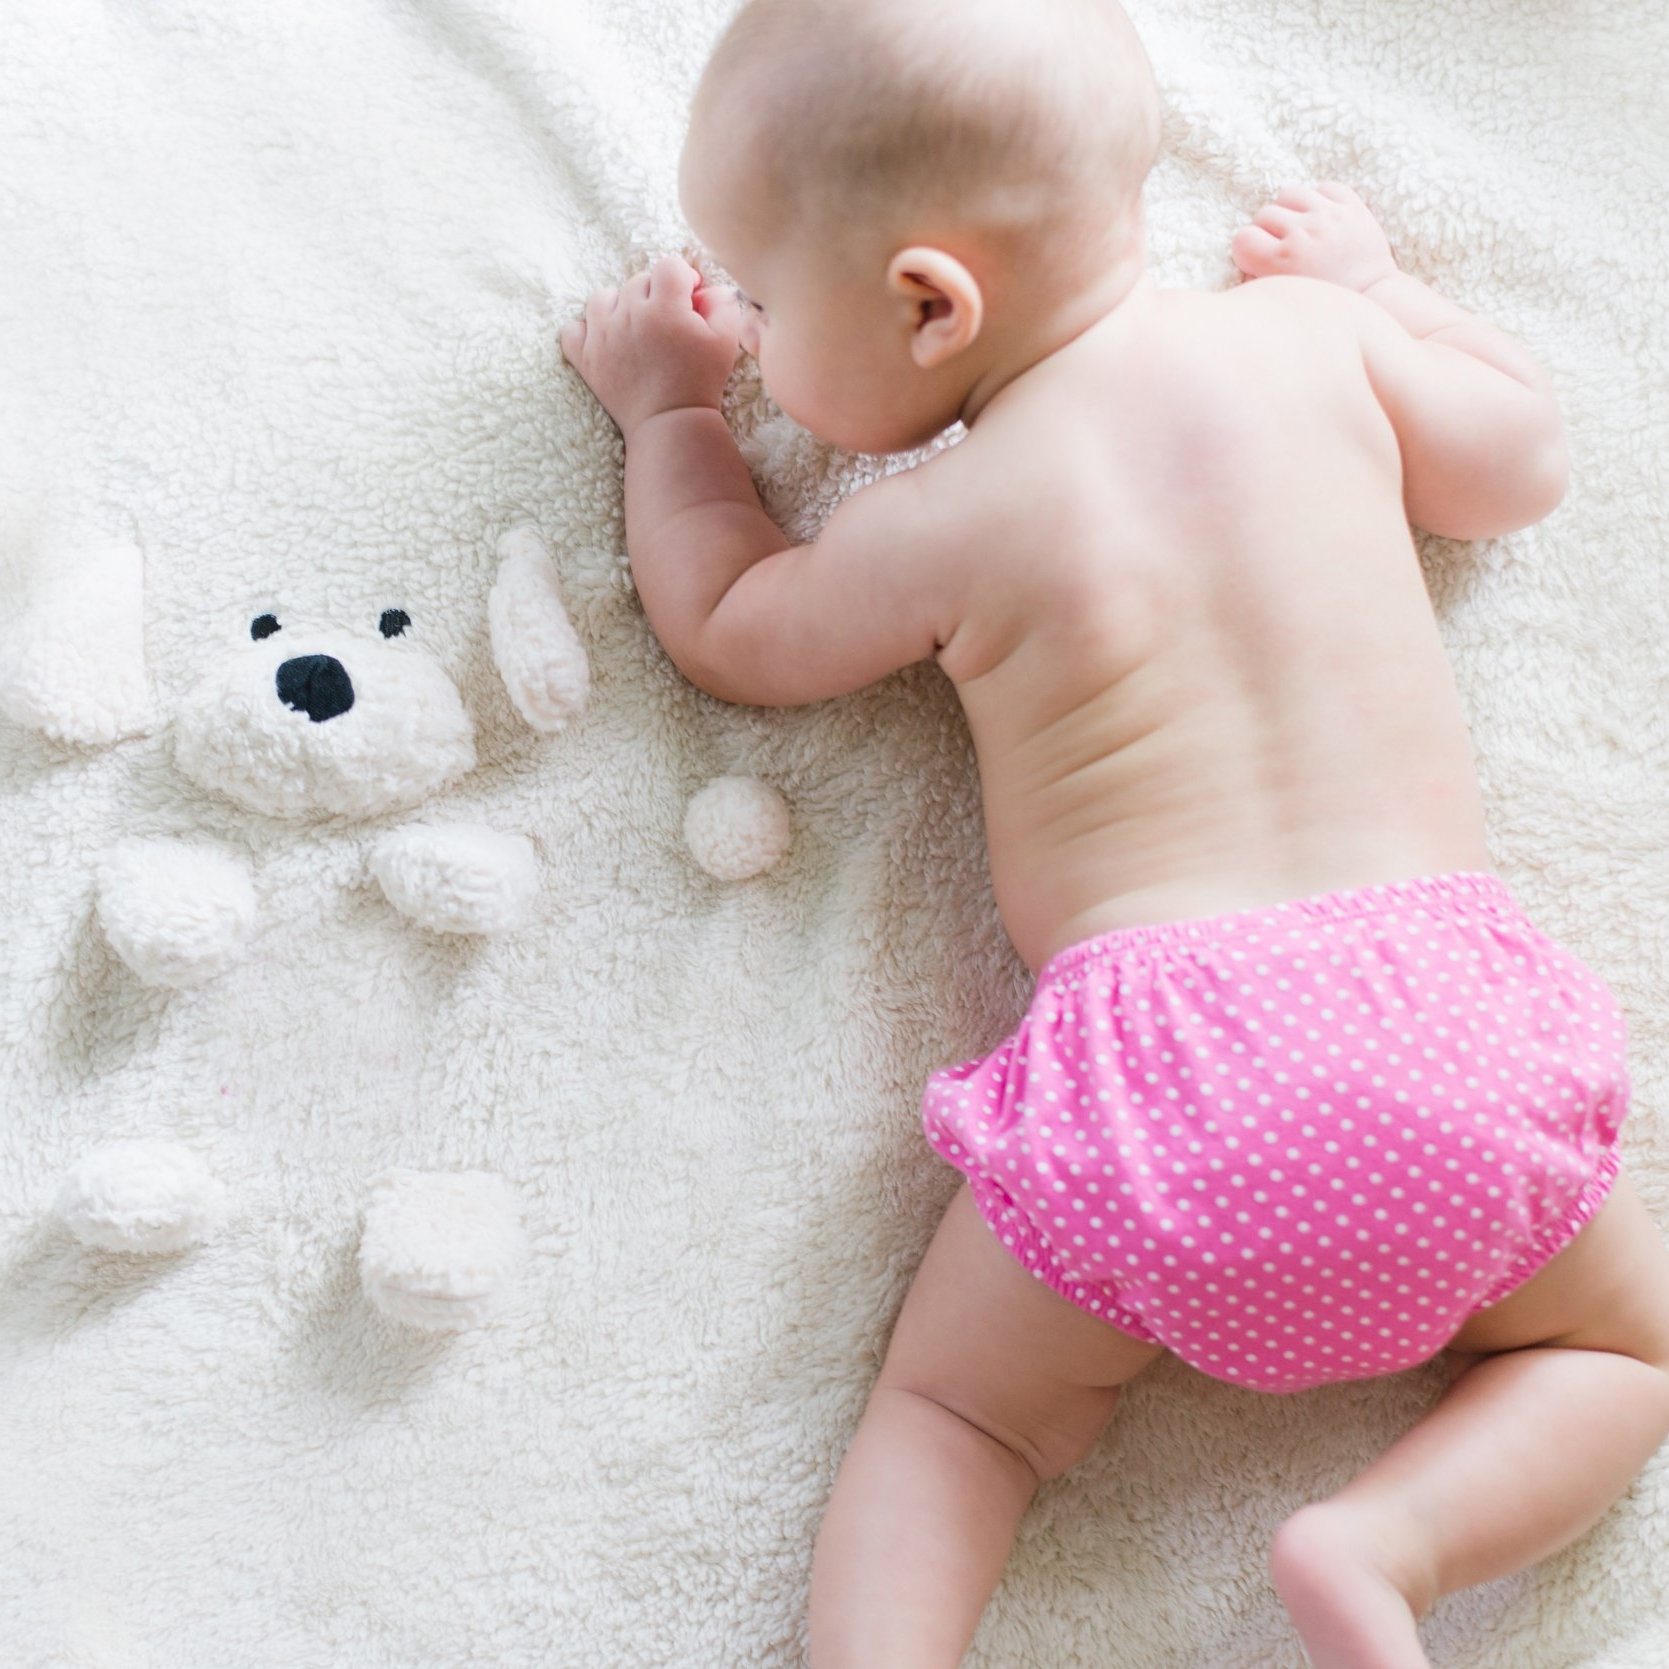 image baby in pink cloth.jpg